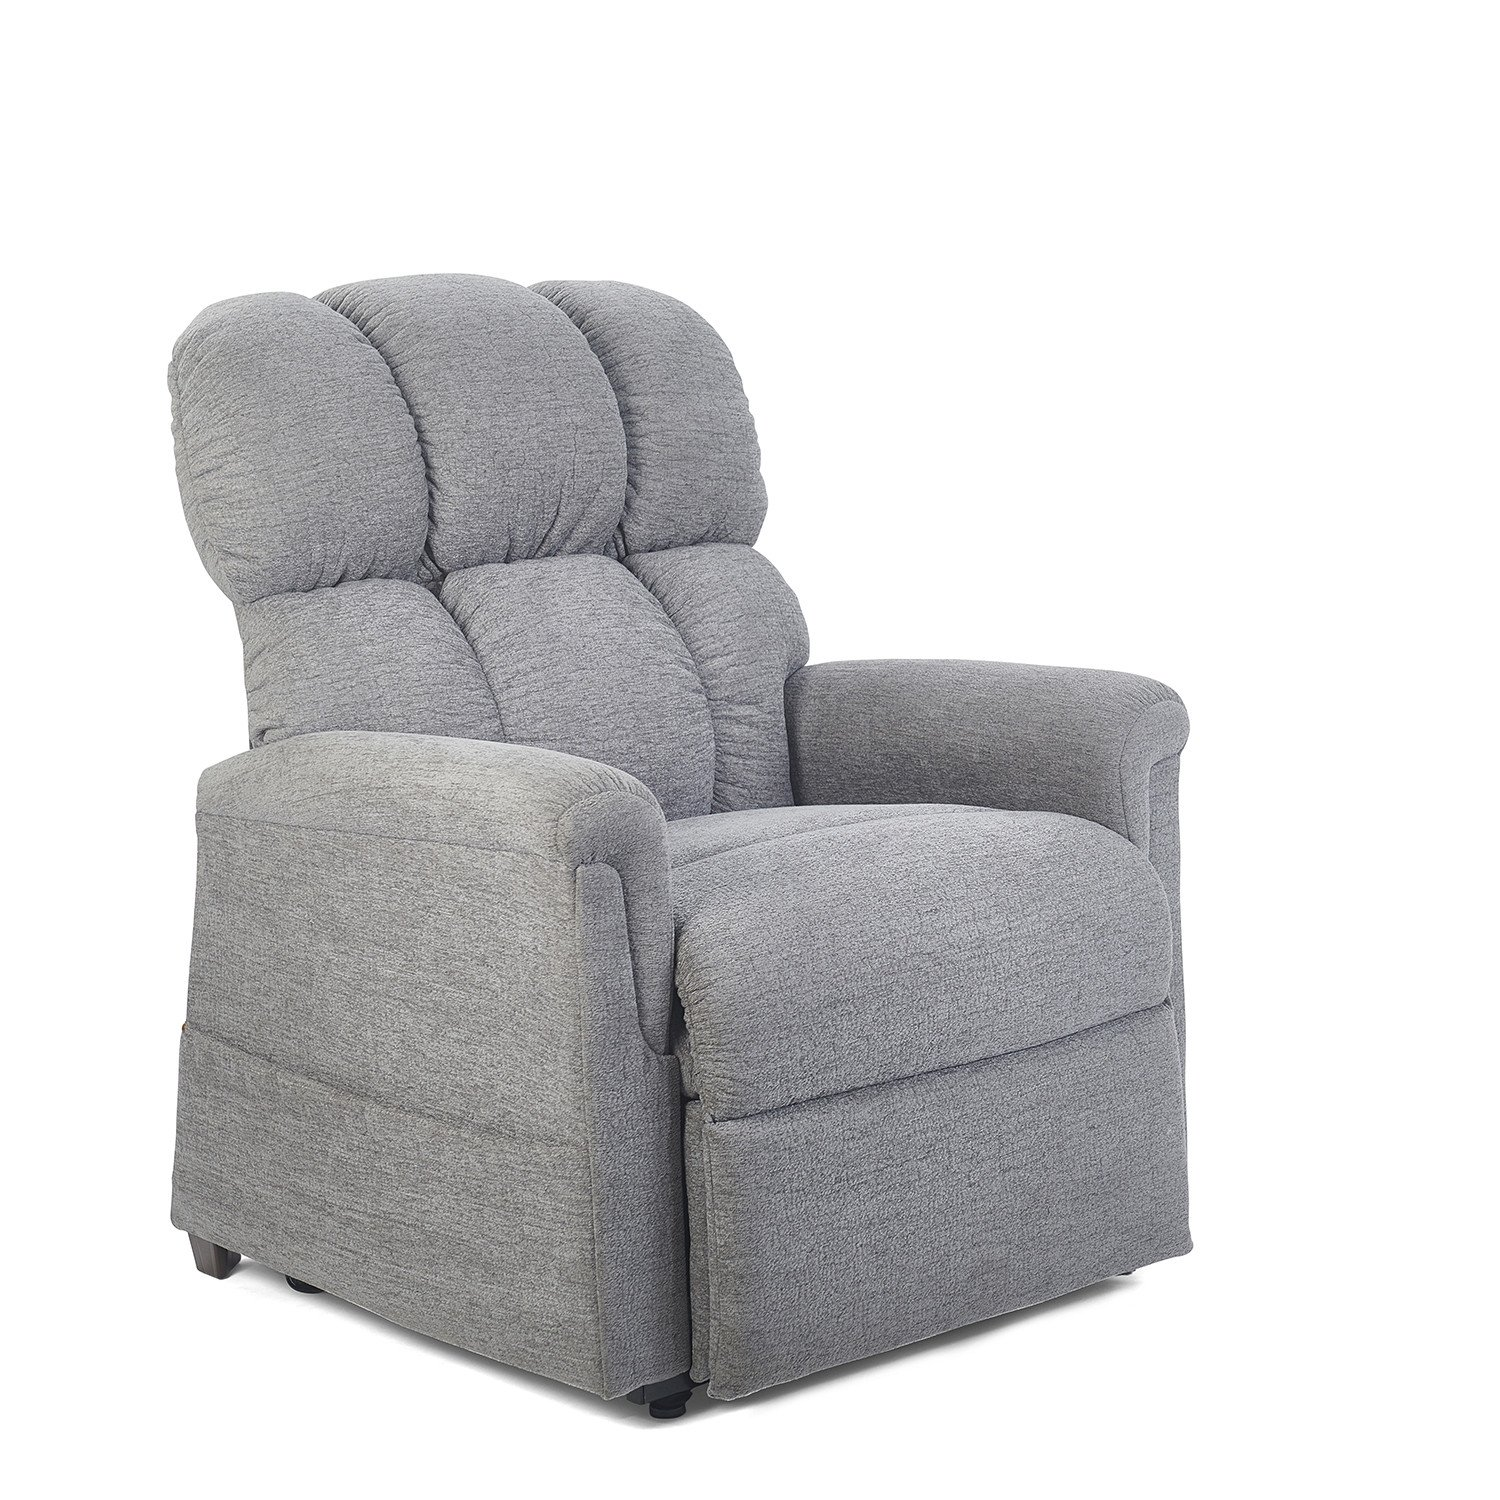 Golden - PR535-M26 Comforter - 3 Position Power Lift Chair Recliner with Chaise - Oxford